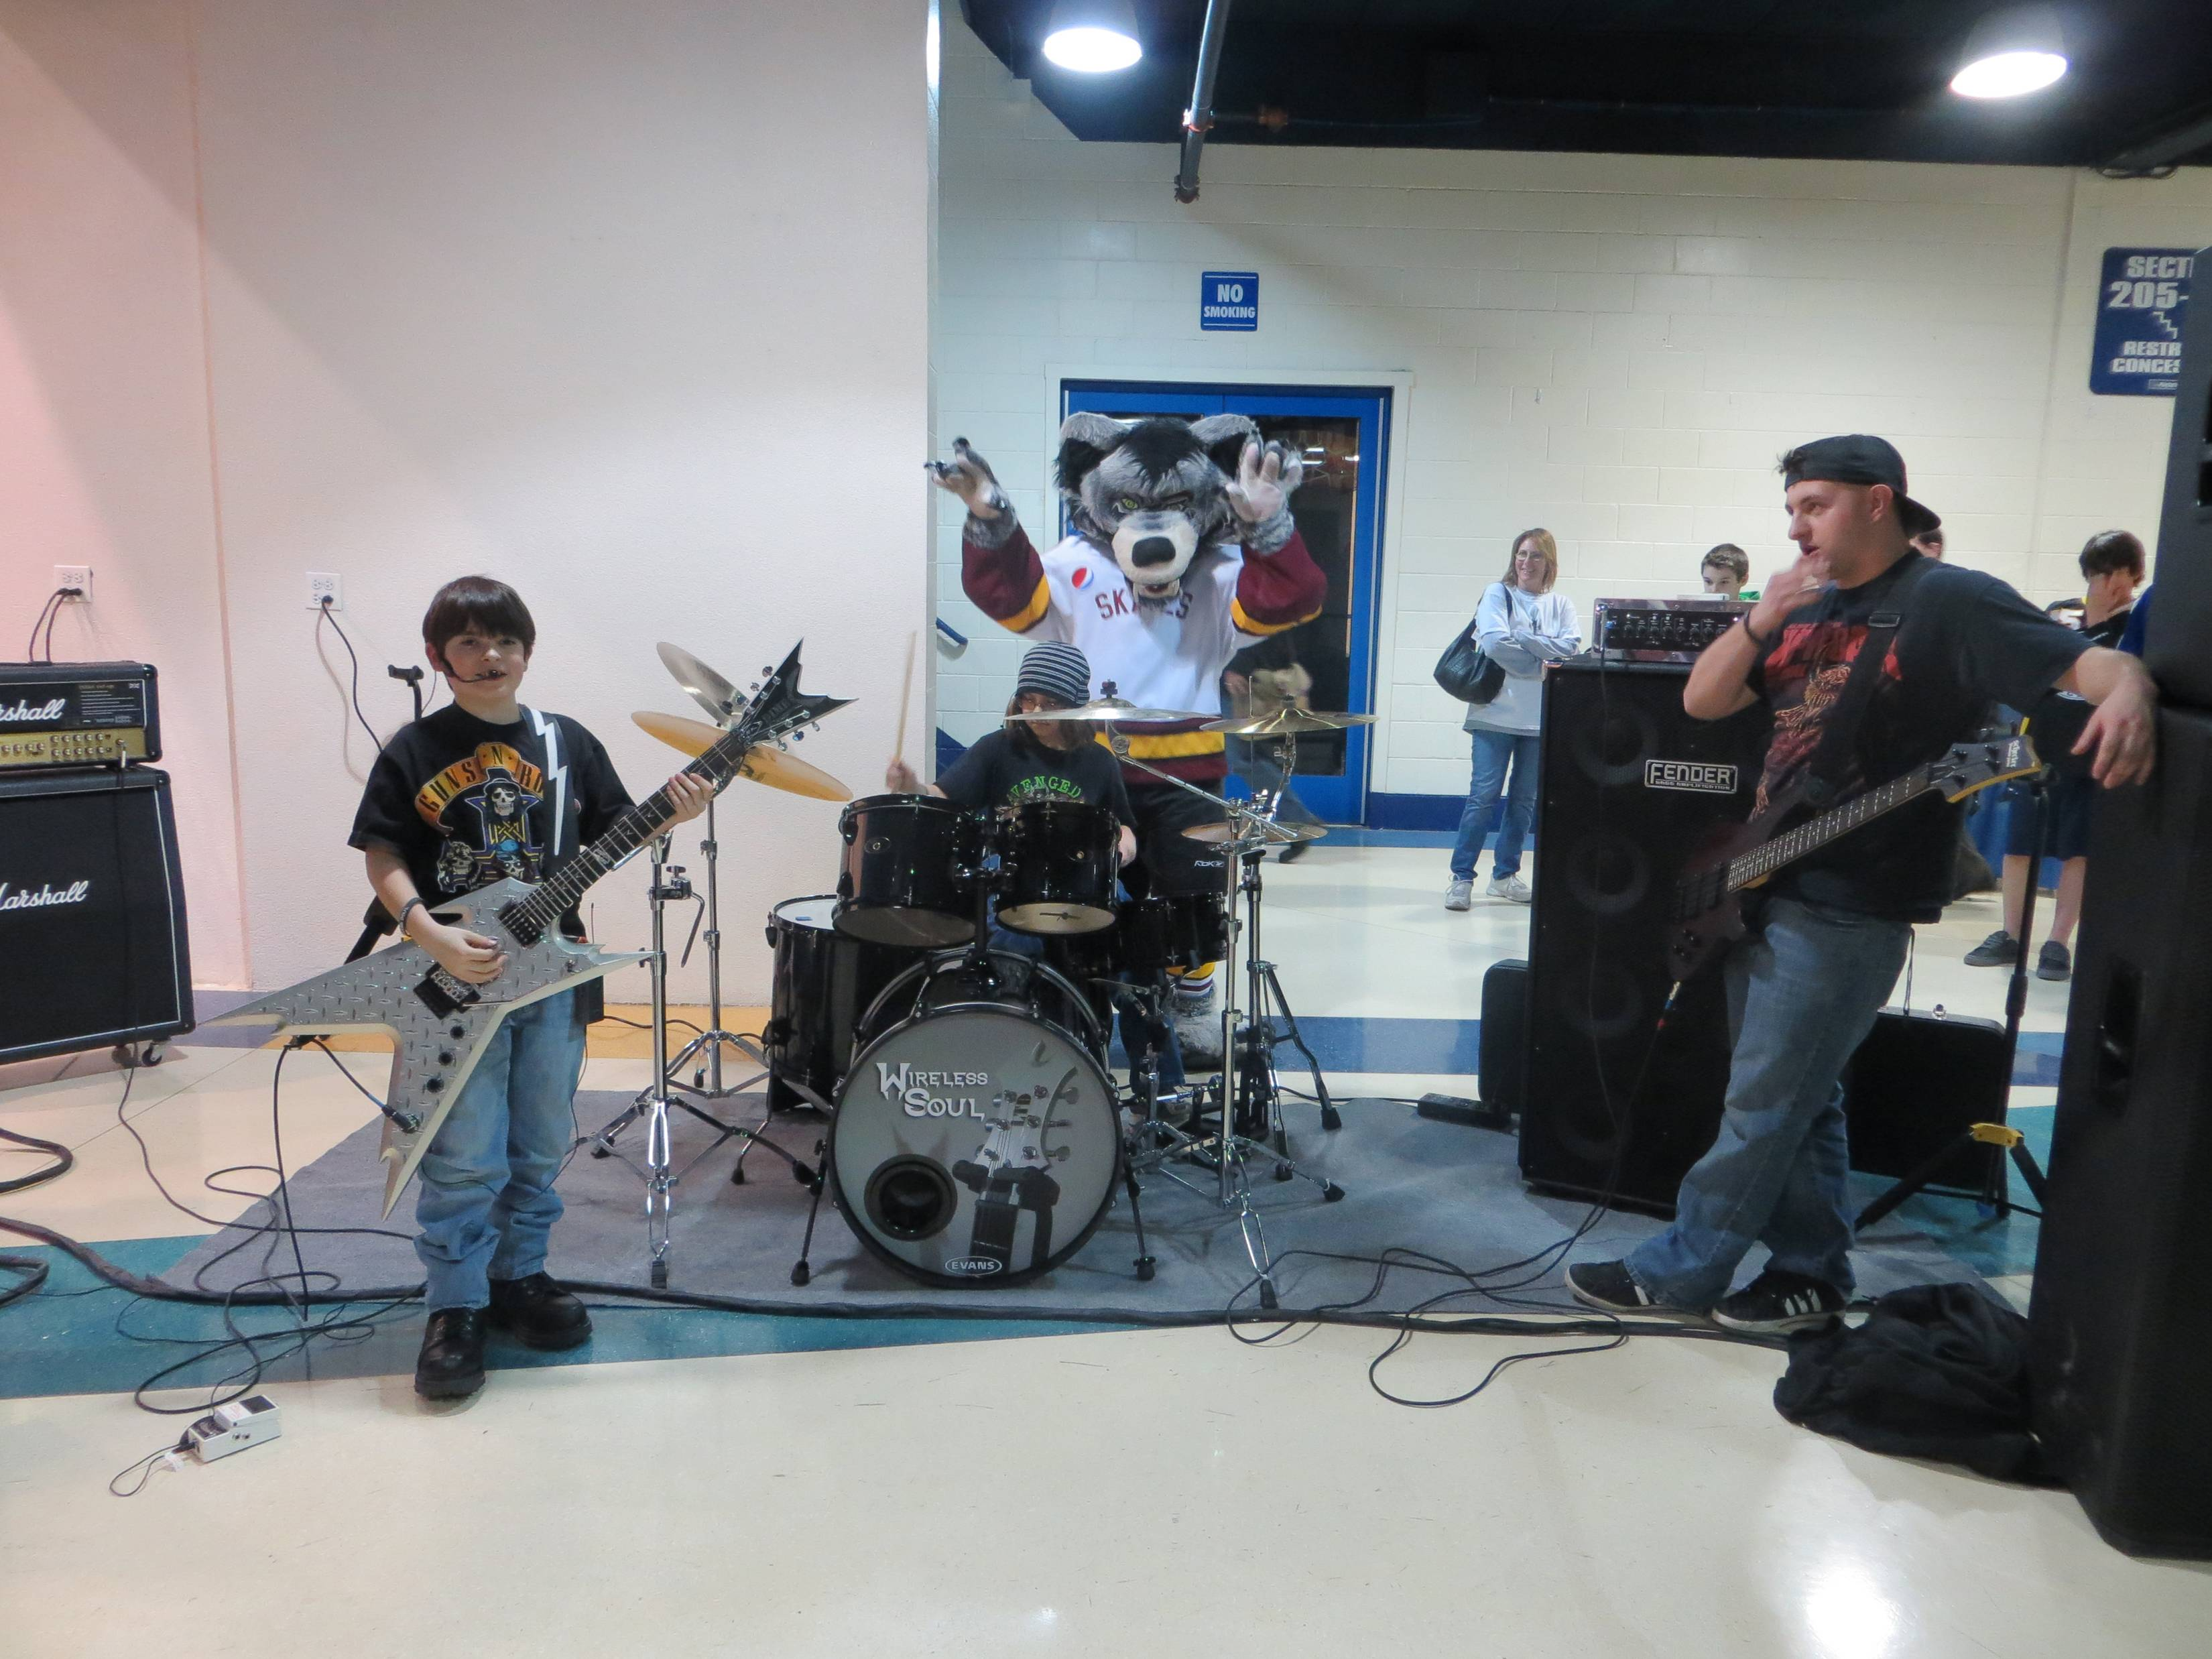 Vince Minogue (left) lead vocals and guitar and Joe Cangelosi (center) drums and vocals of Wireless Soul featuring Brad Opalinski on bass with Skates (the official mascot of The Chicago Wolves) at Allstate Arena.